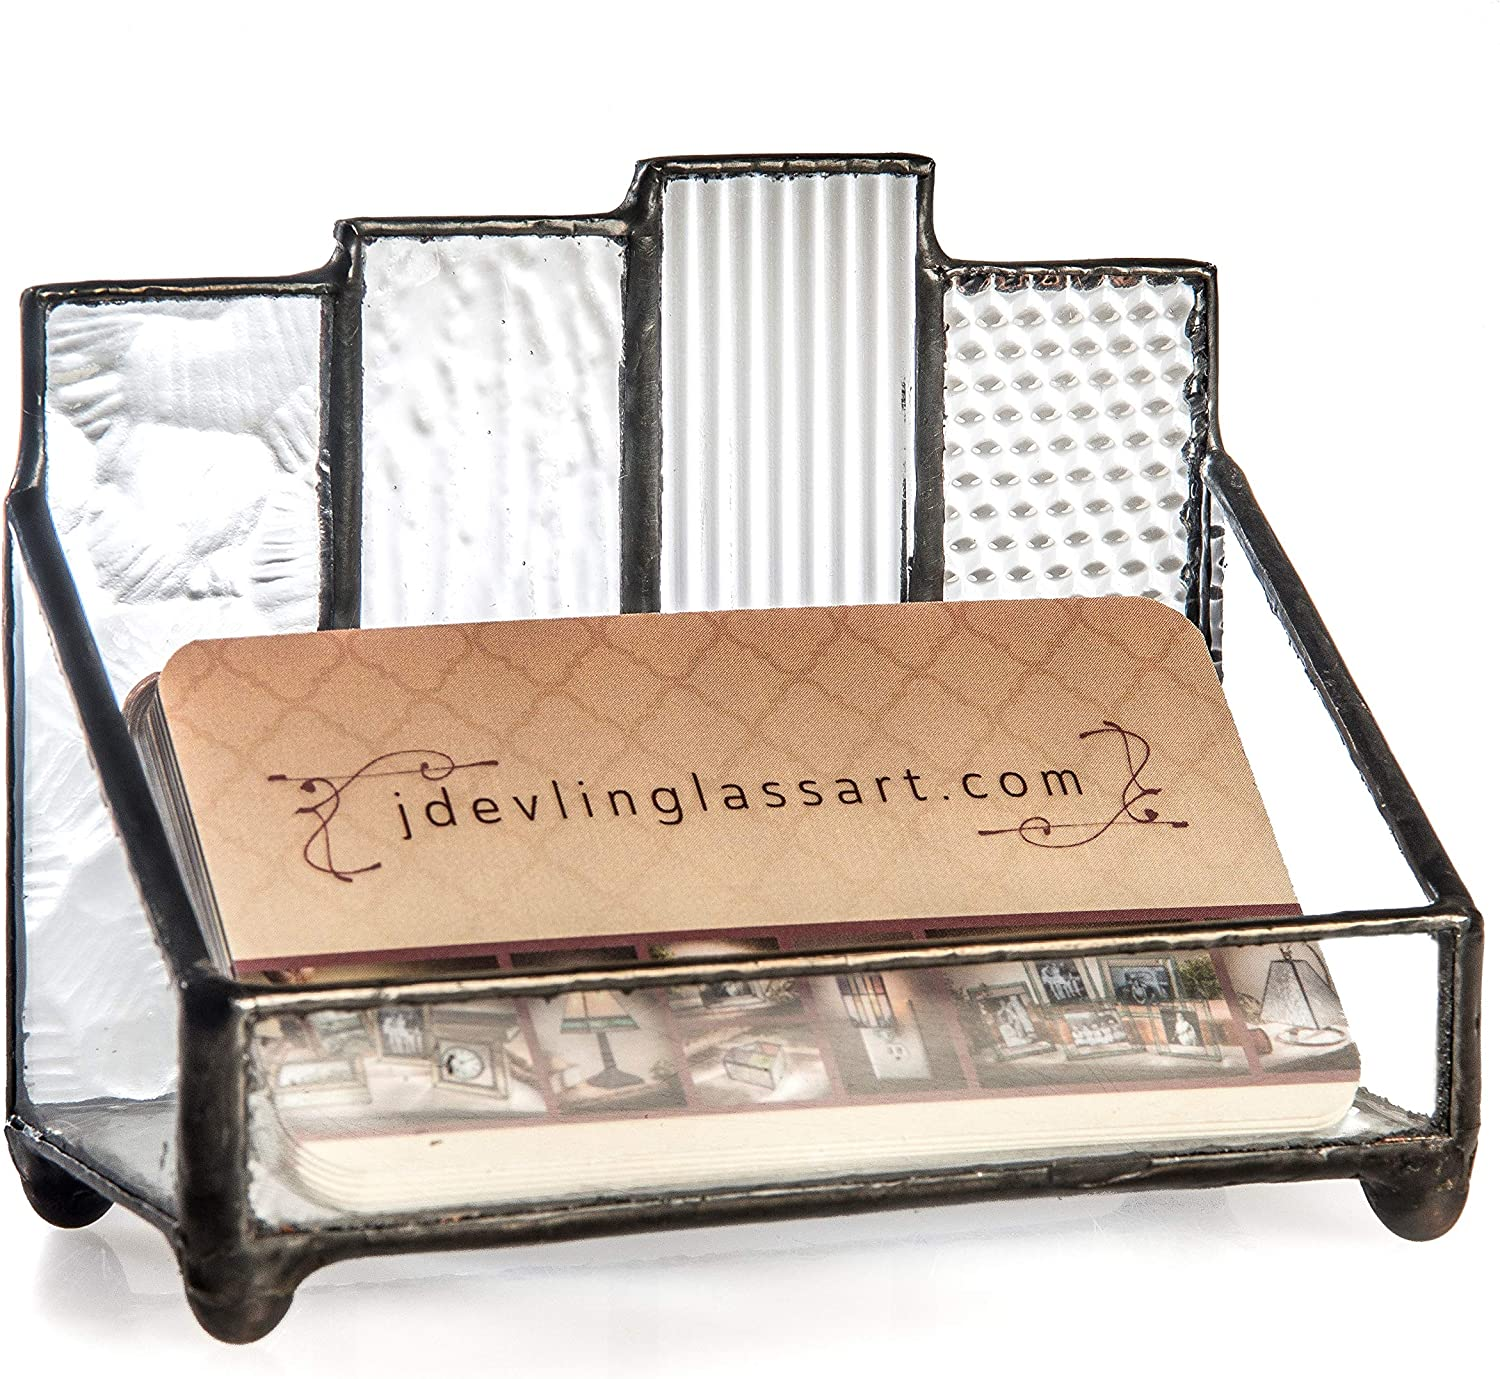 Business Card Holder Desk Organizer Office Décor Mens Womens Decorative Display Clear Stained Glass Gift for Boss Co-Worker Secretary J Devlin Crd 110